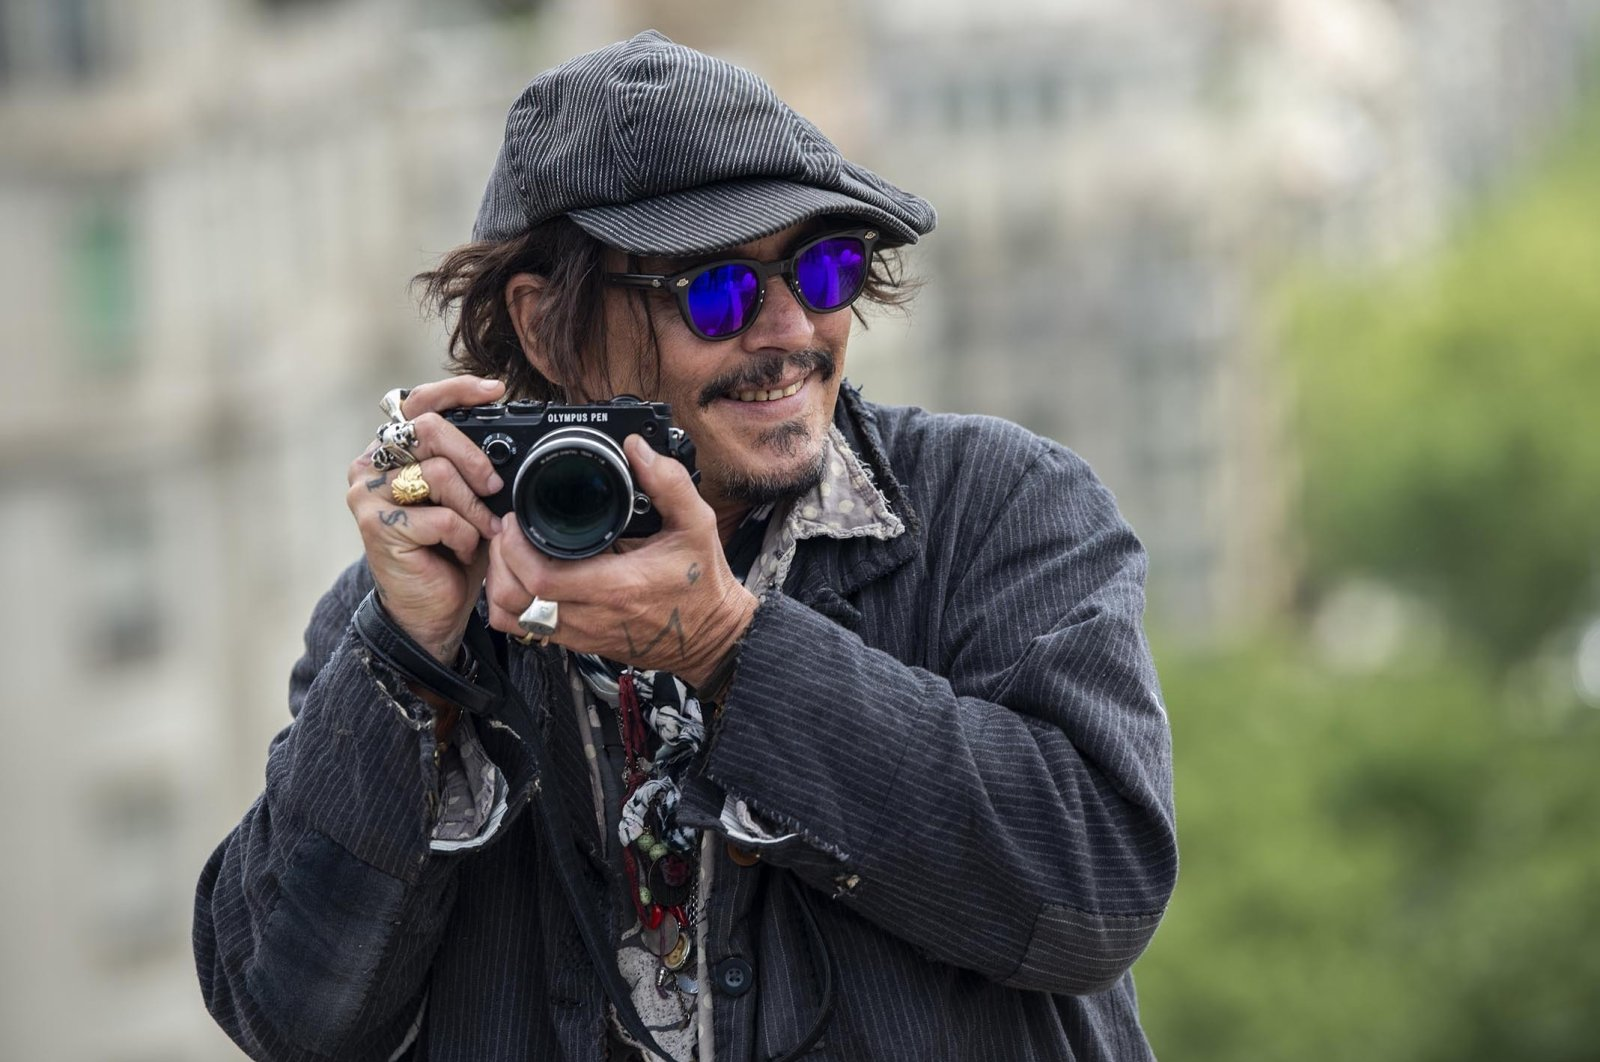 """American actor Johnny Depp attends a photocall for his latest film""""Minamata"""" during BCN Film Festival at Hotel Casa Fuster in Barcelona, Spain,April 16, 2021. (Getty Images)"""